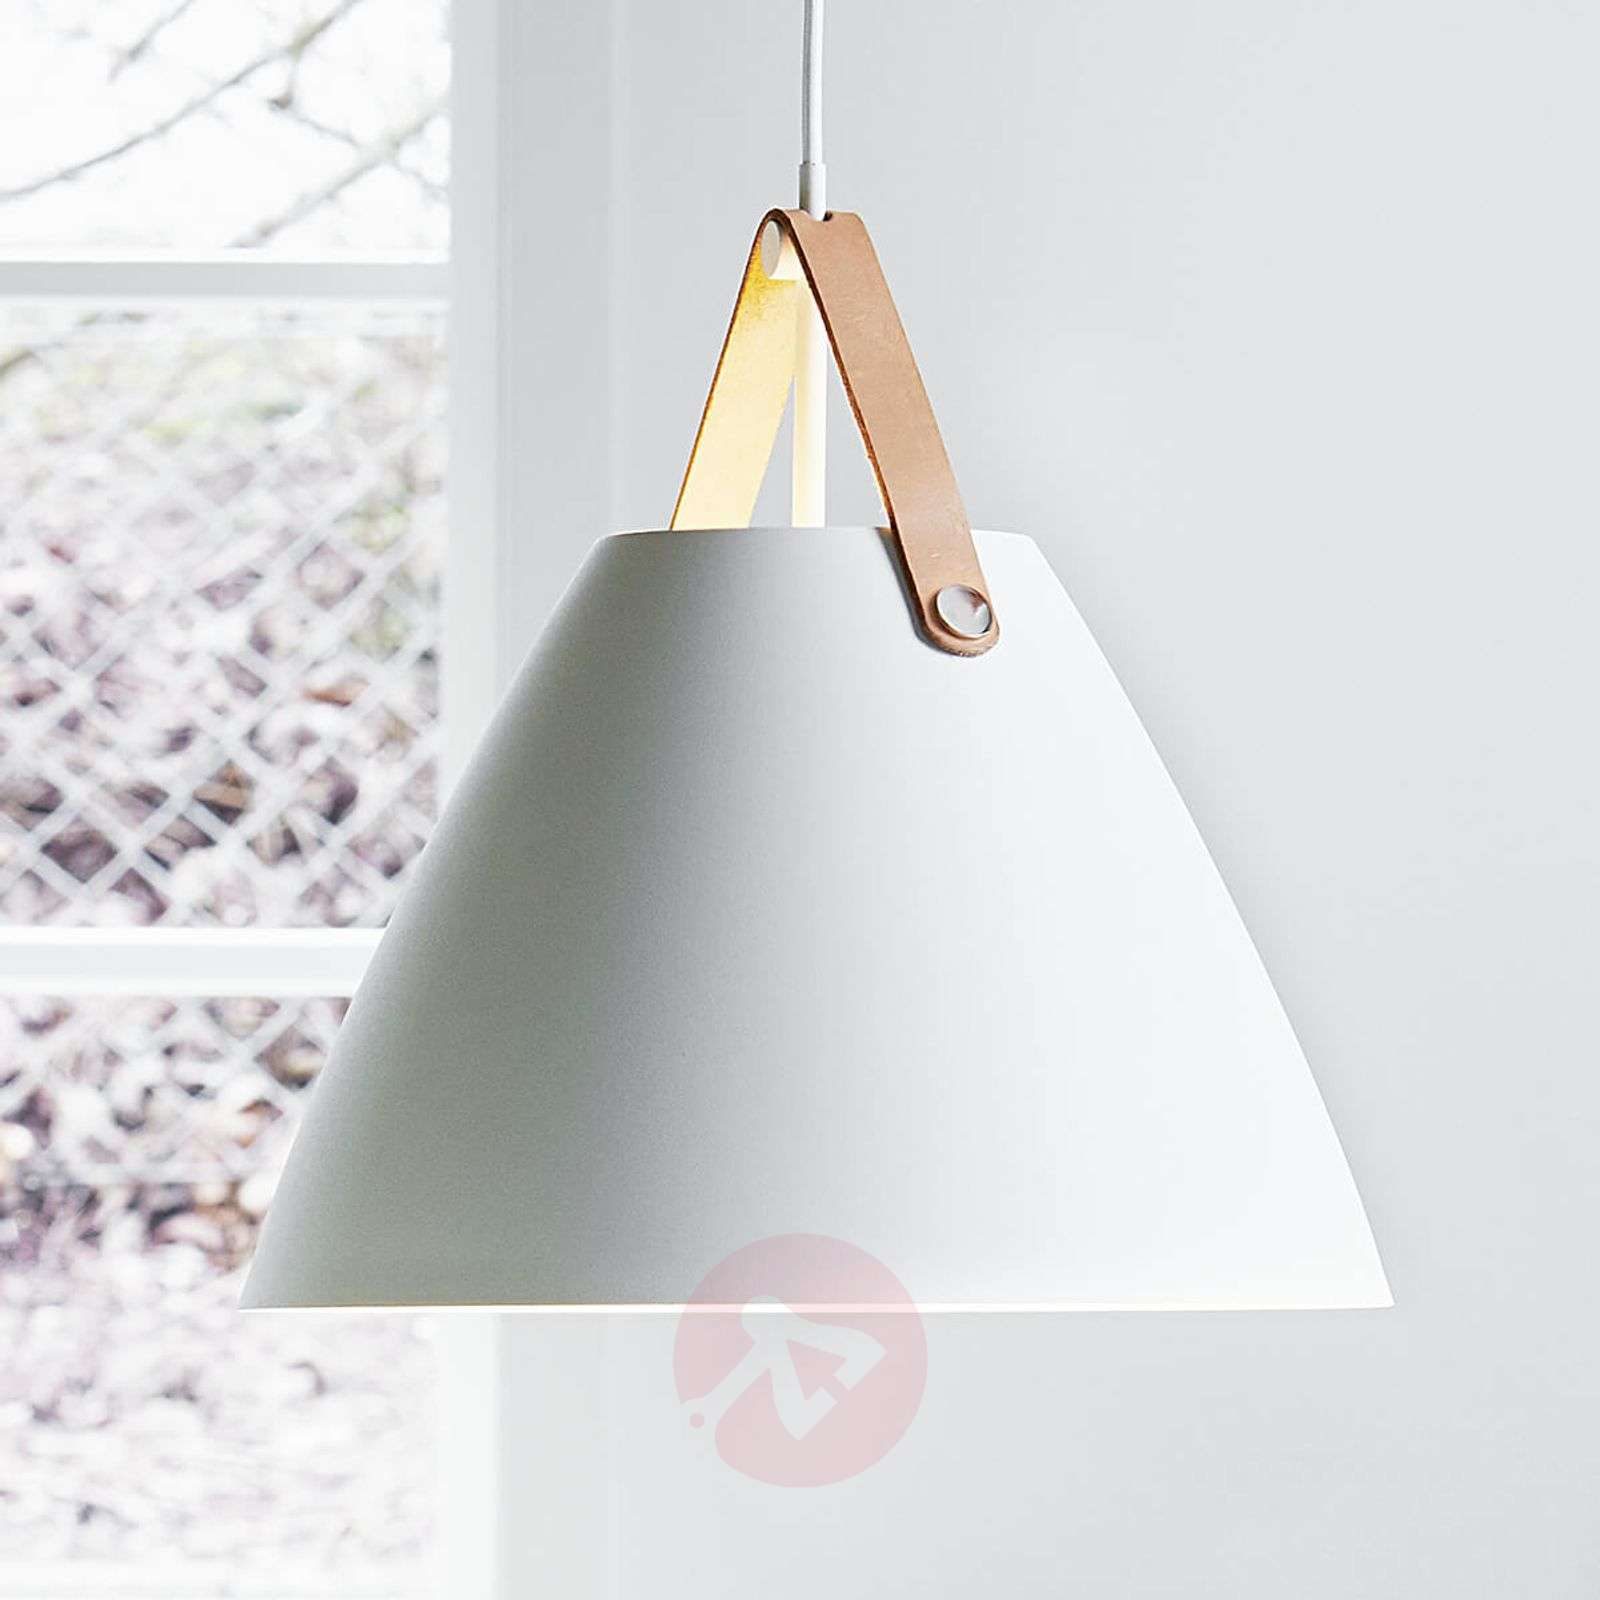 Strap 36 LED pendant lamp with a leather strap-7006018-01